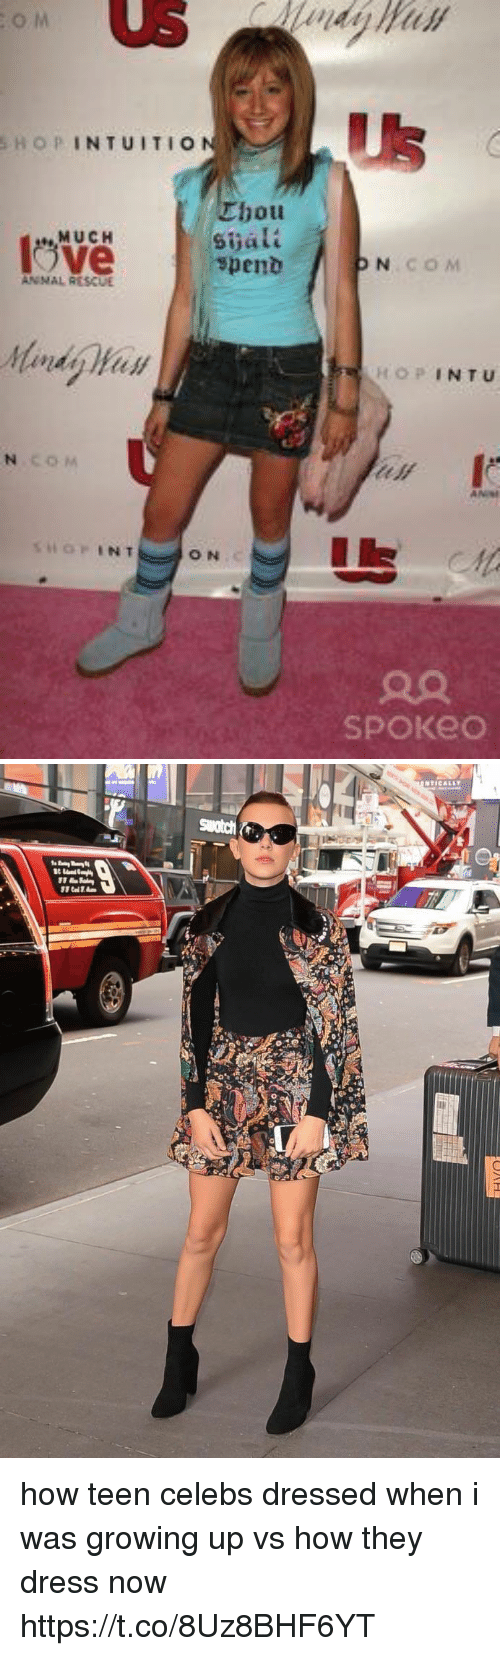 Growing Up, Dress, and Girl Memes: o M  Us  SHOPINTUITIO  Ubou  Sijalt  spent  MUCH  COM  Mandy Han  OPINTU  c o M  ON  90  SPOKeo how teen celebs dressed when i was growing up vs how they dress now https://t.co/8Uz8BHF6YT